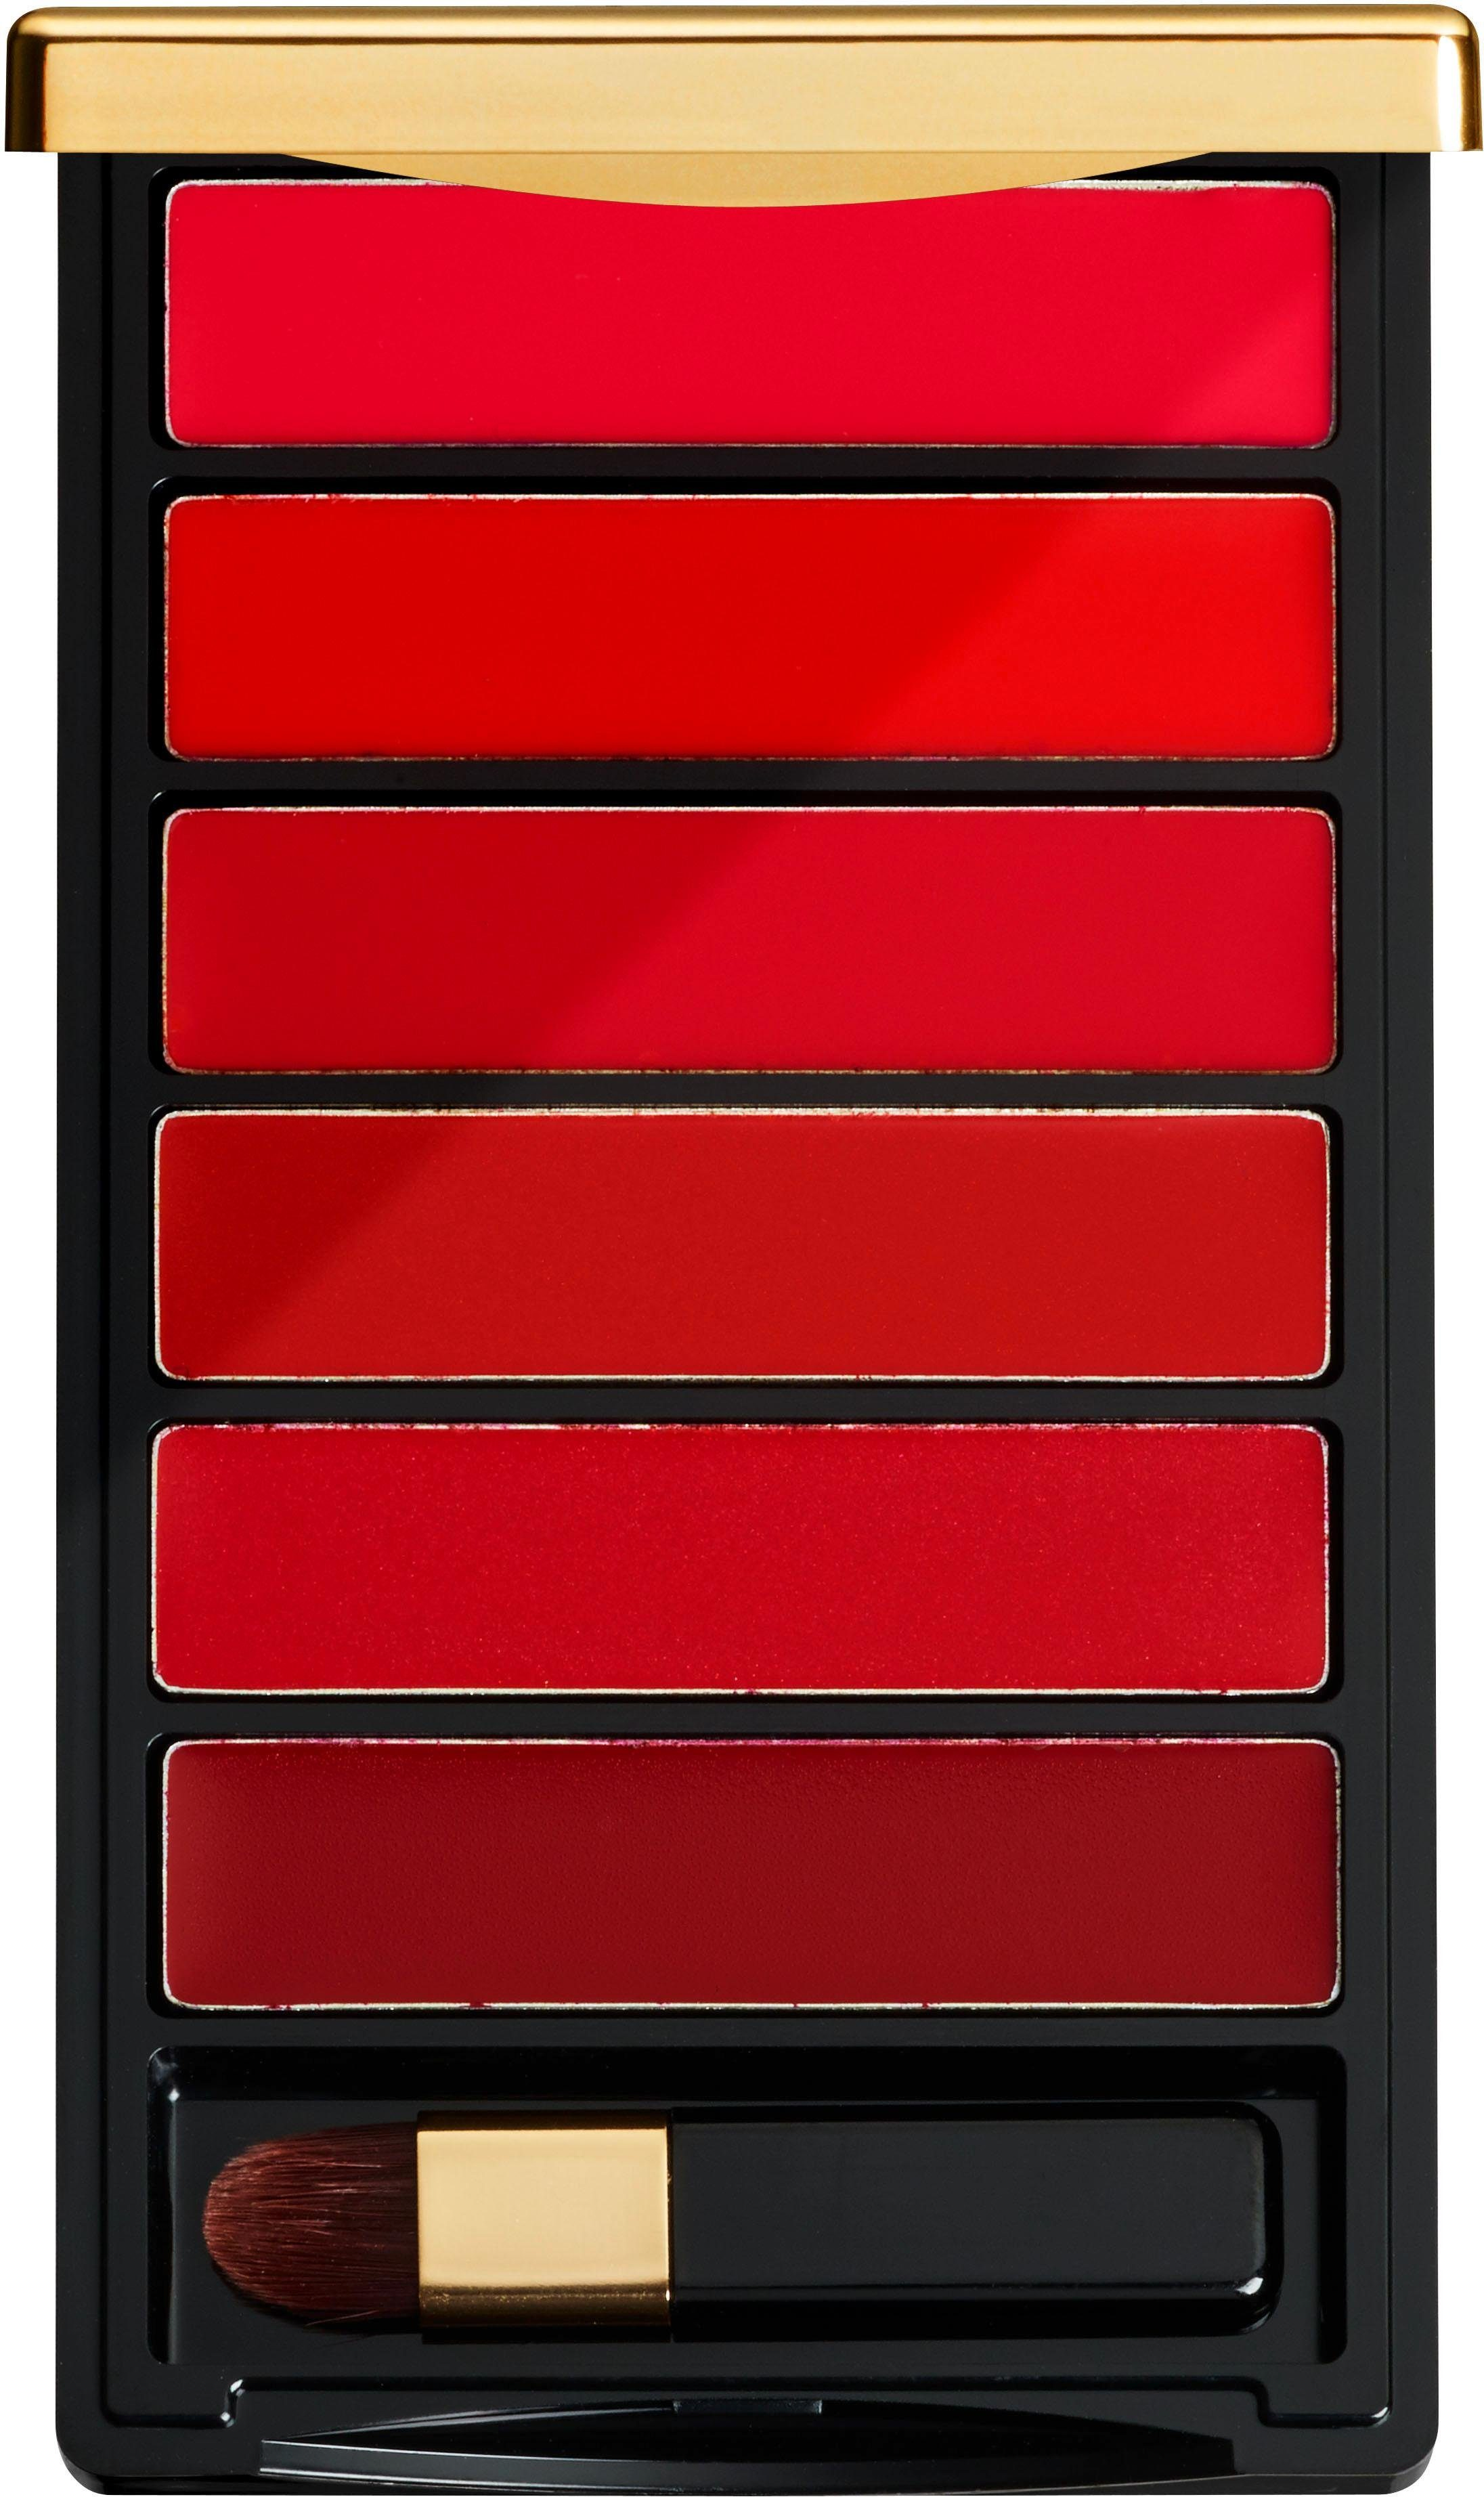 L'Oréal Paris, »Color Riche La Palette Lip«, Lippenstift